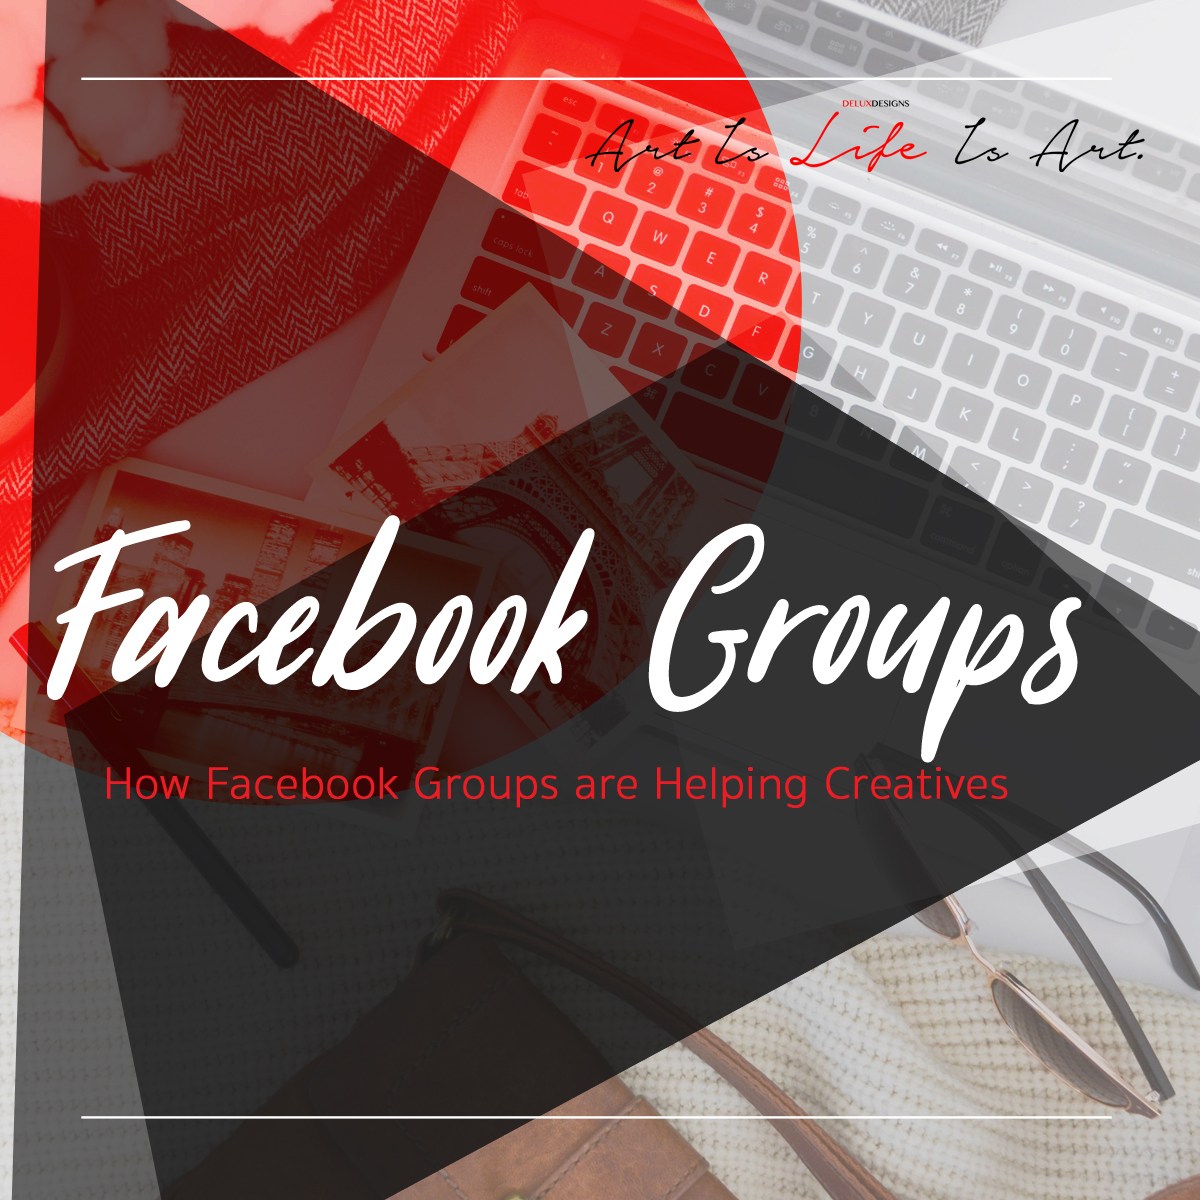 How Facebook Groups are Helping Creatives